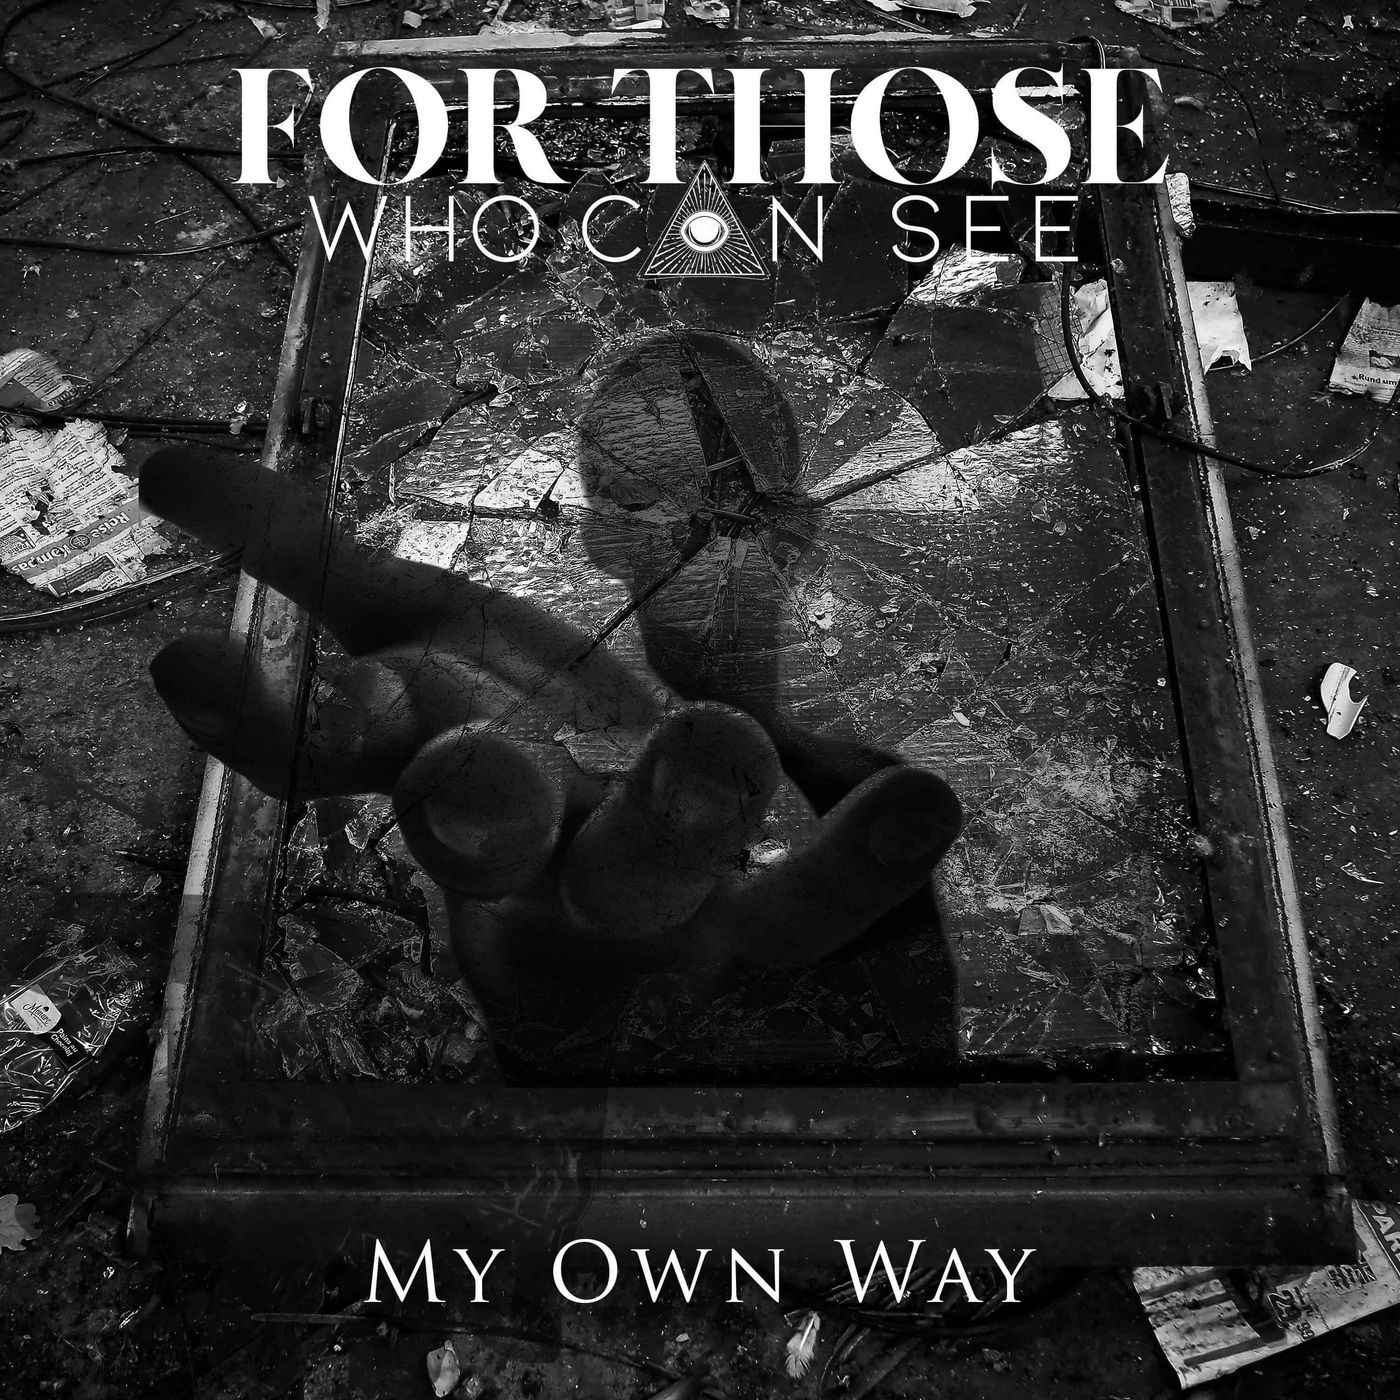 For Those Who Can See - My Own Way [single] (2020)